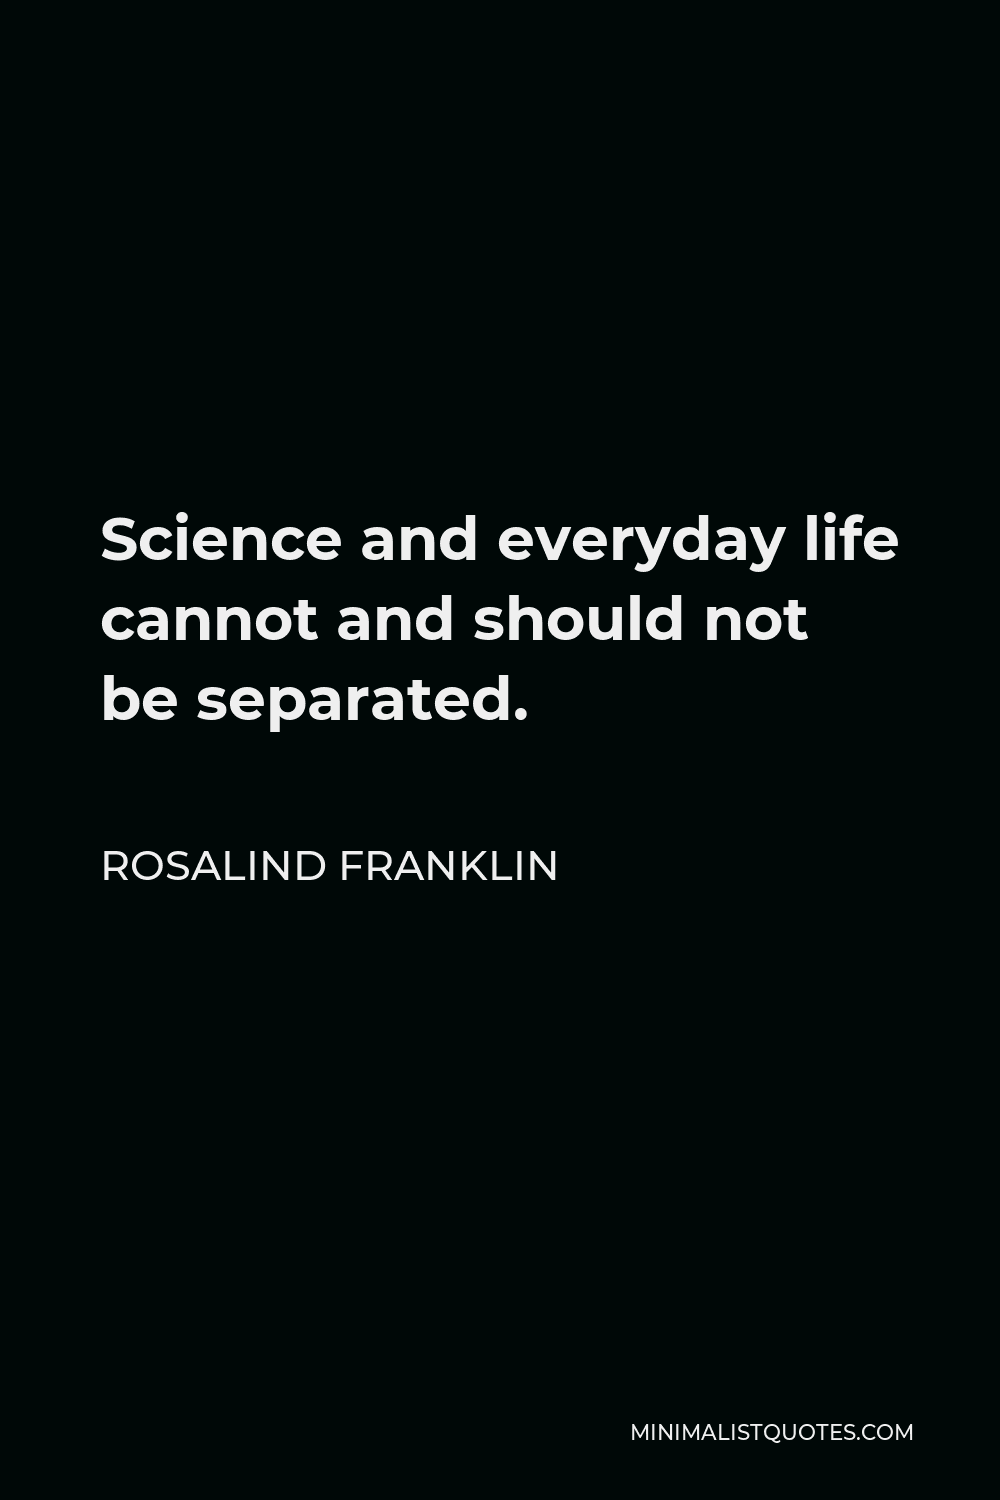 Rosalind Franklin Quote - Science and everyday life cannot and should not be separated.